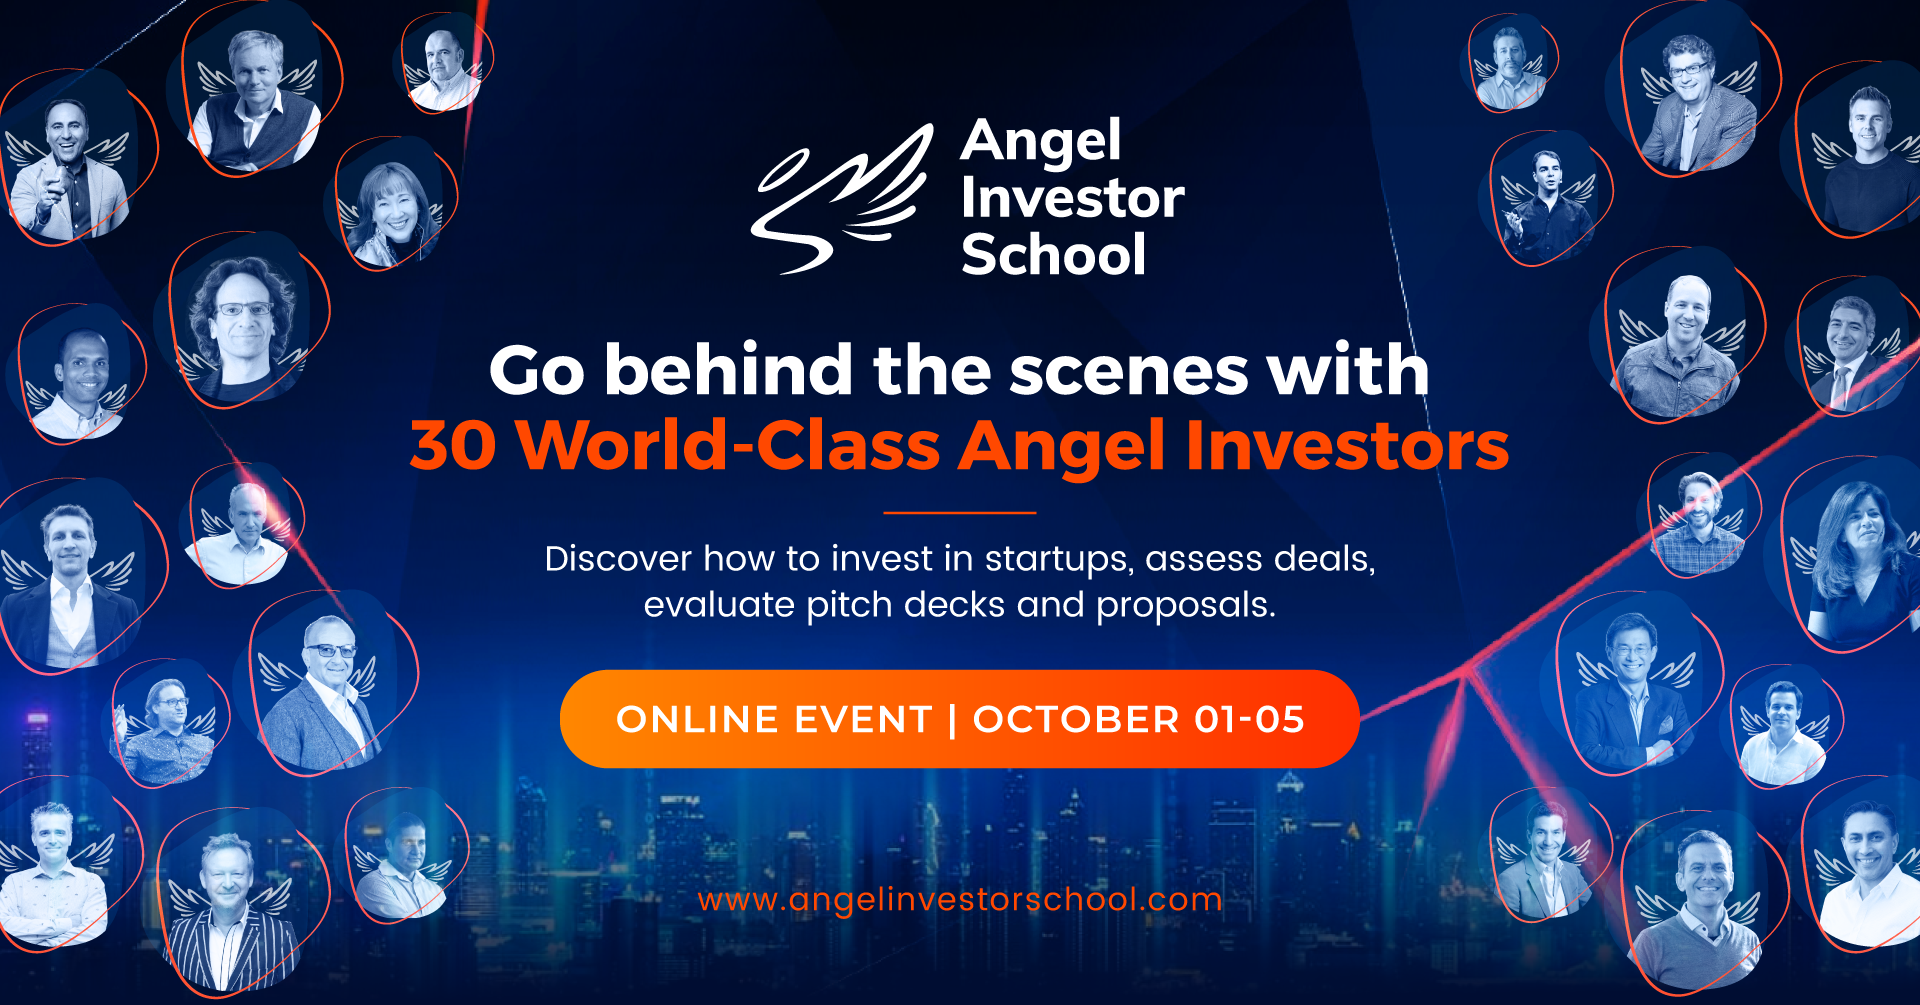 Top business angels show how angel investing can save the startup world